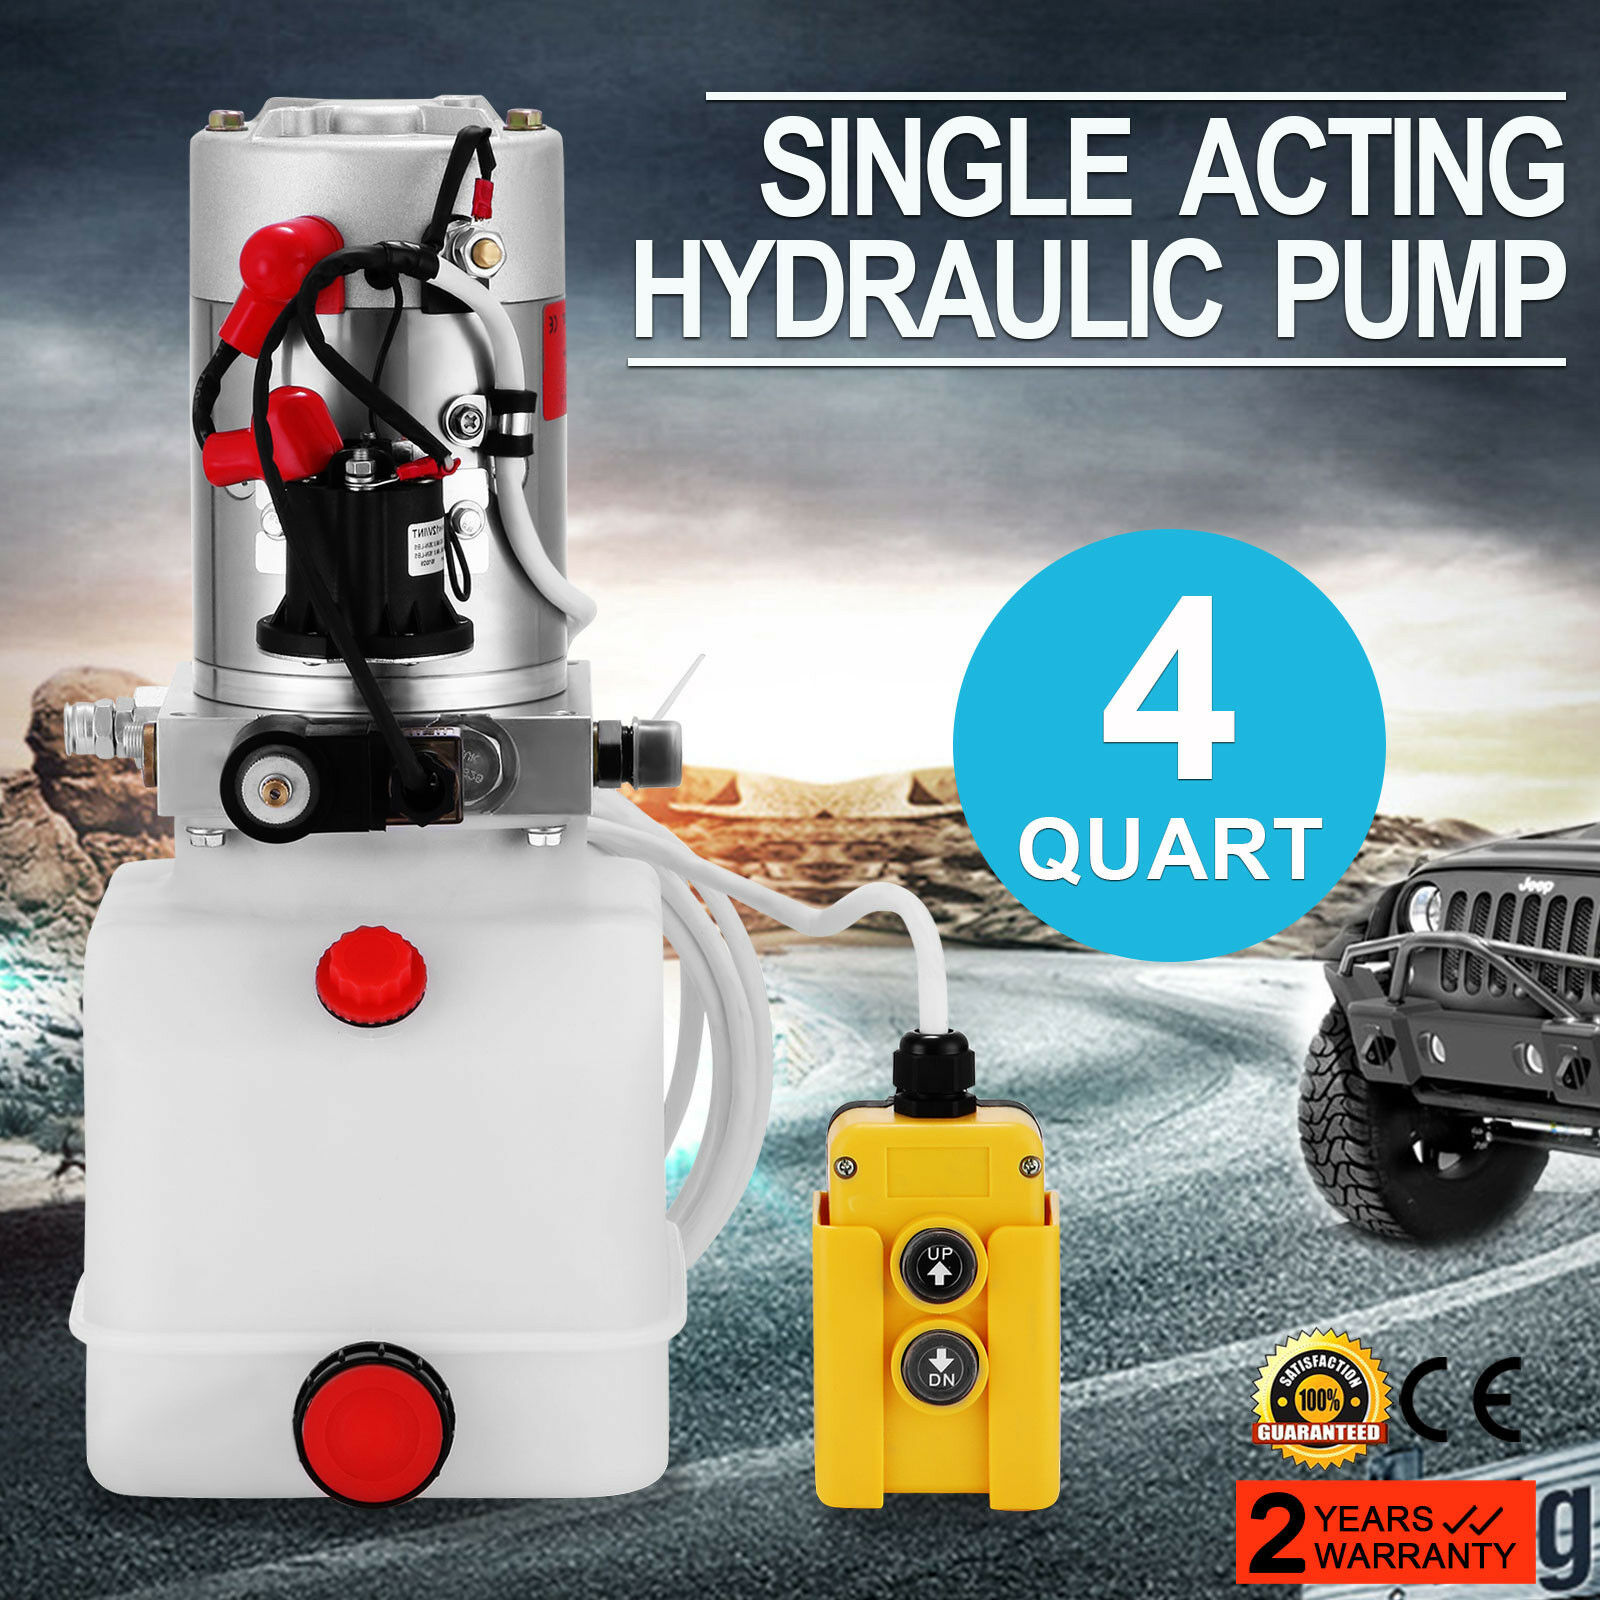 Hydraulic Pump 12V DC Single Acting Hydraulic Power Unit 4 Quart Plastic Tank Hydraulic Pump Power Unit For Dump Trailer Car Lif